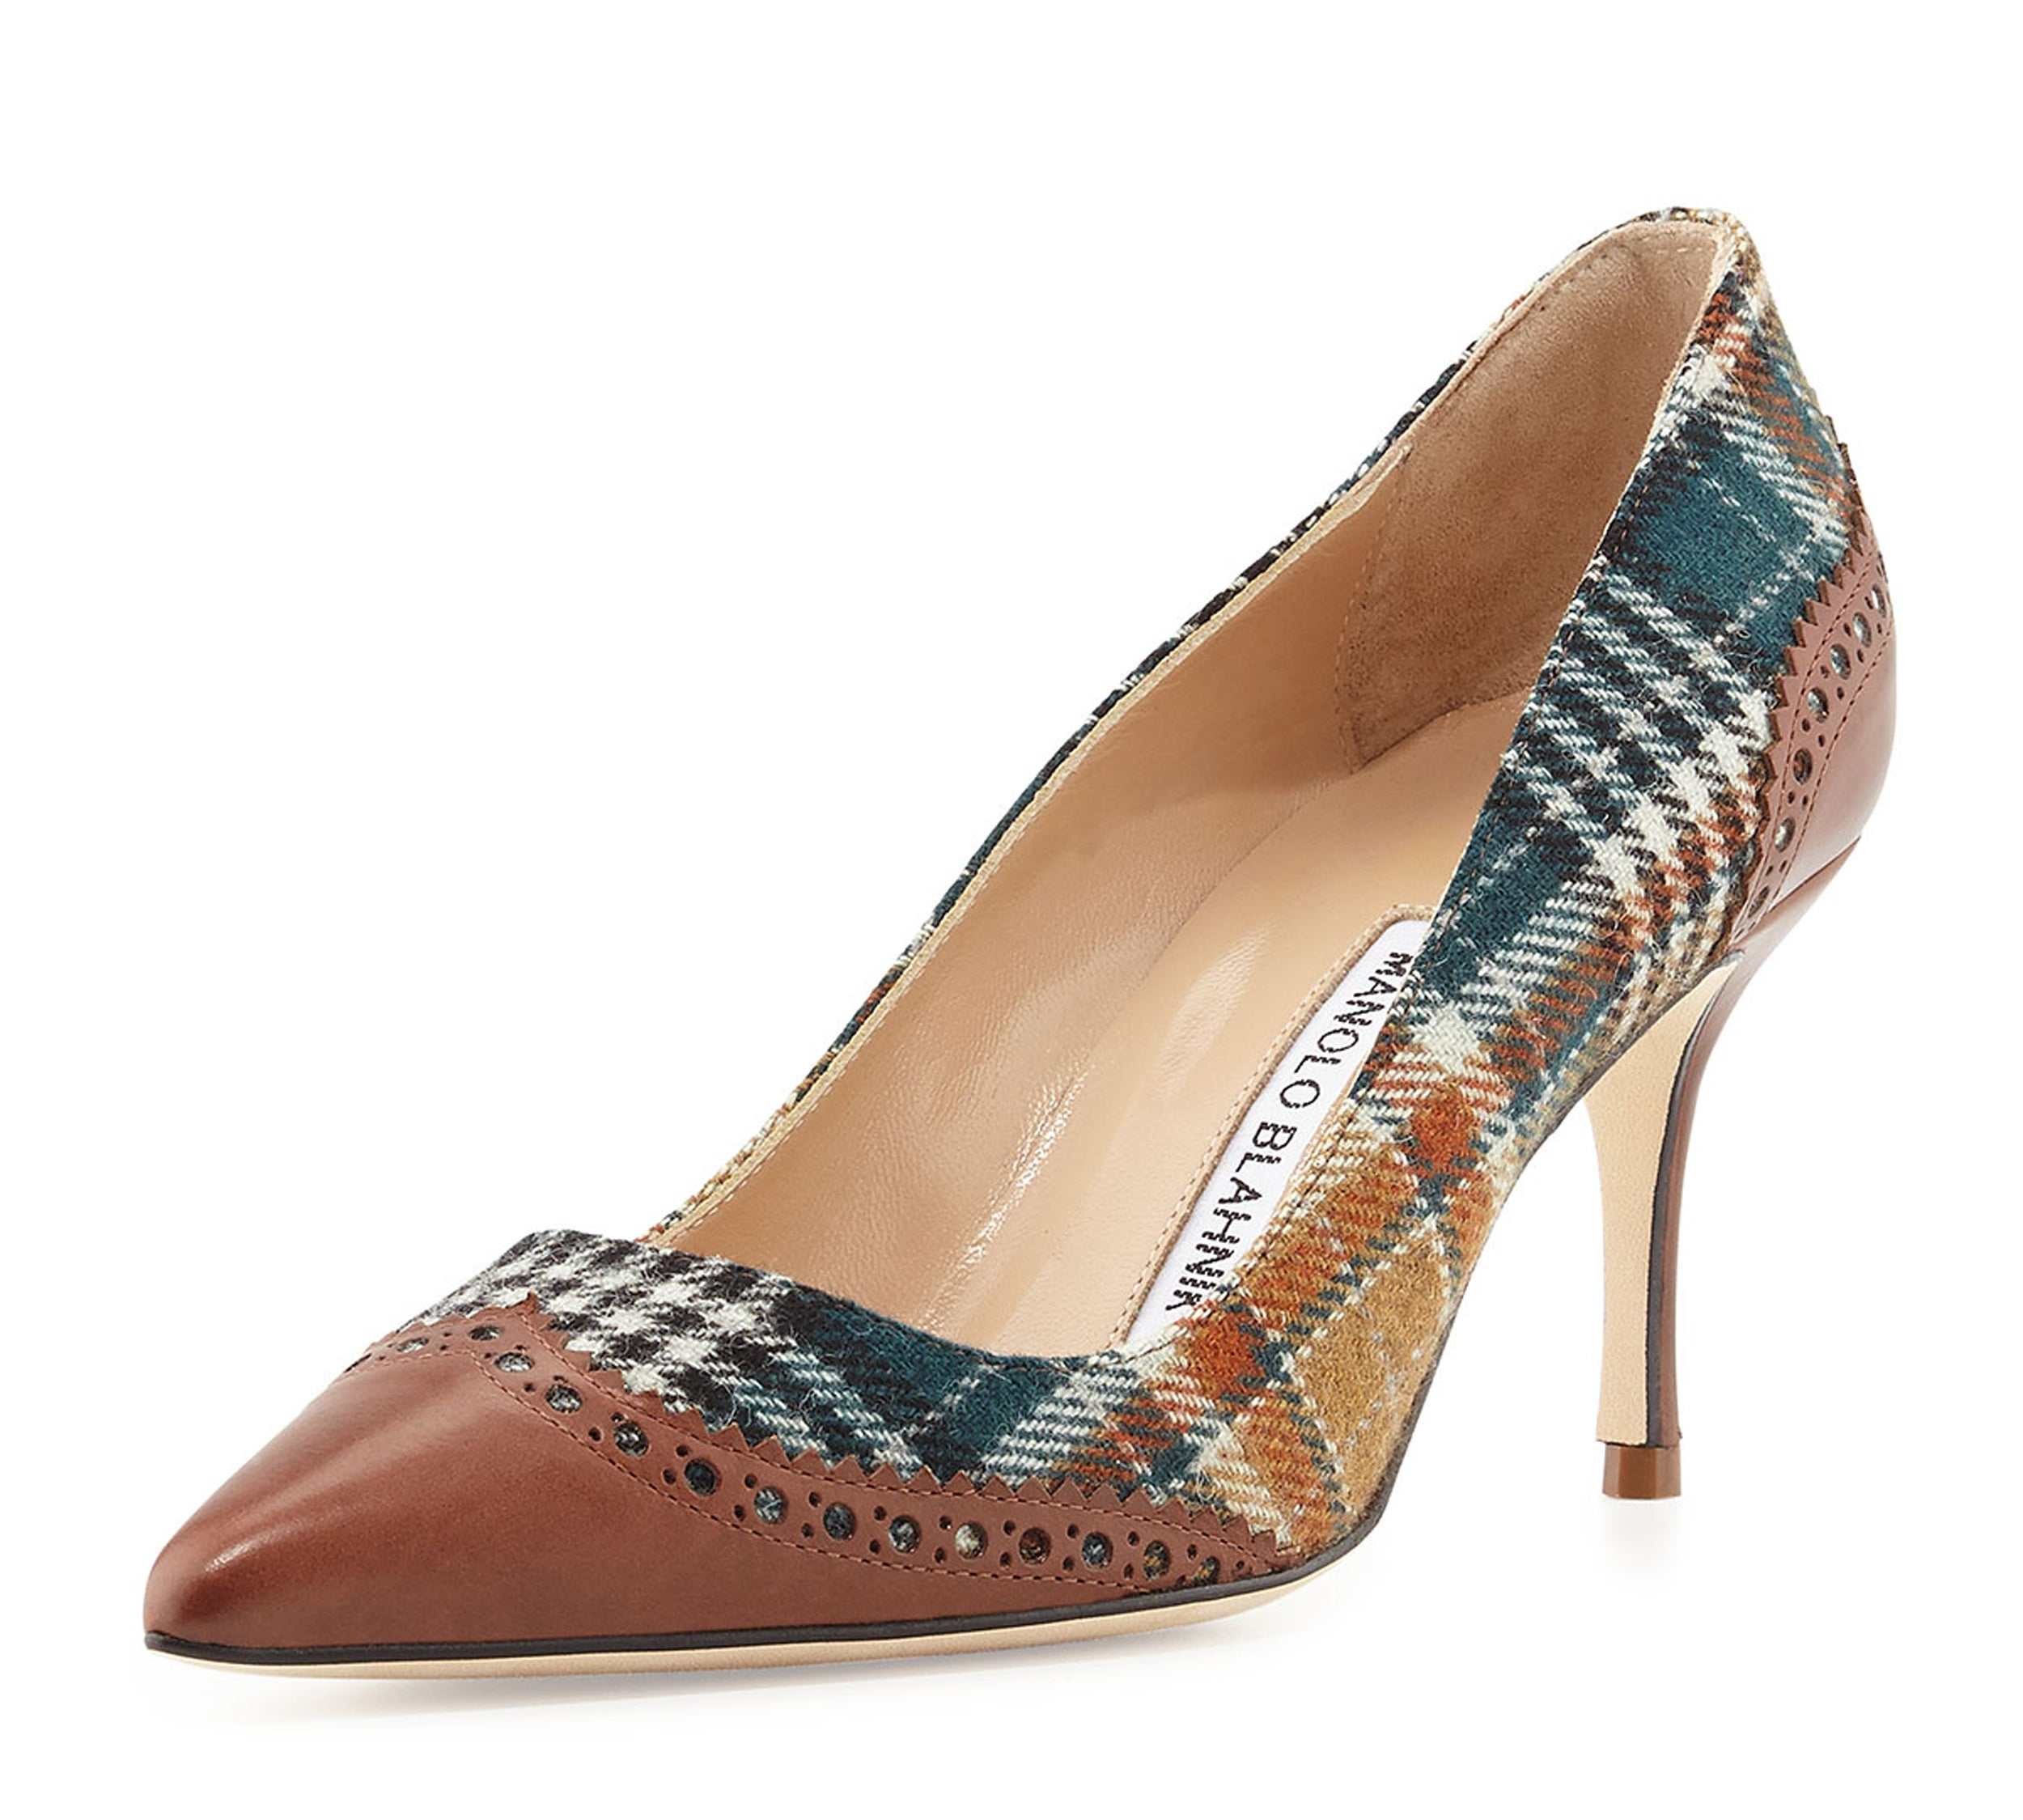 721cc381dd MANOLO BLAHNIK 41 Plaid and Brown Leather Ancor Wingtip Pumps Heels 10.5 NEW